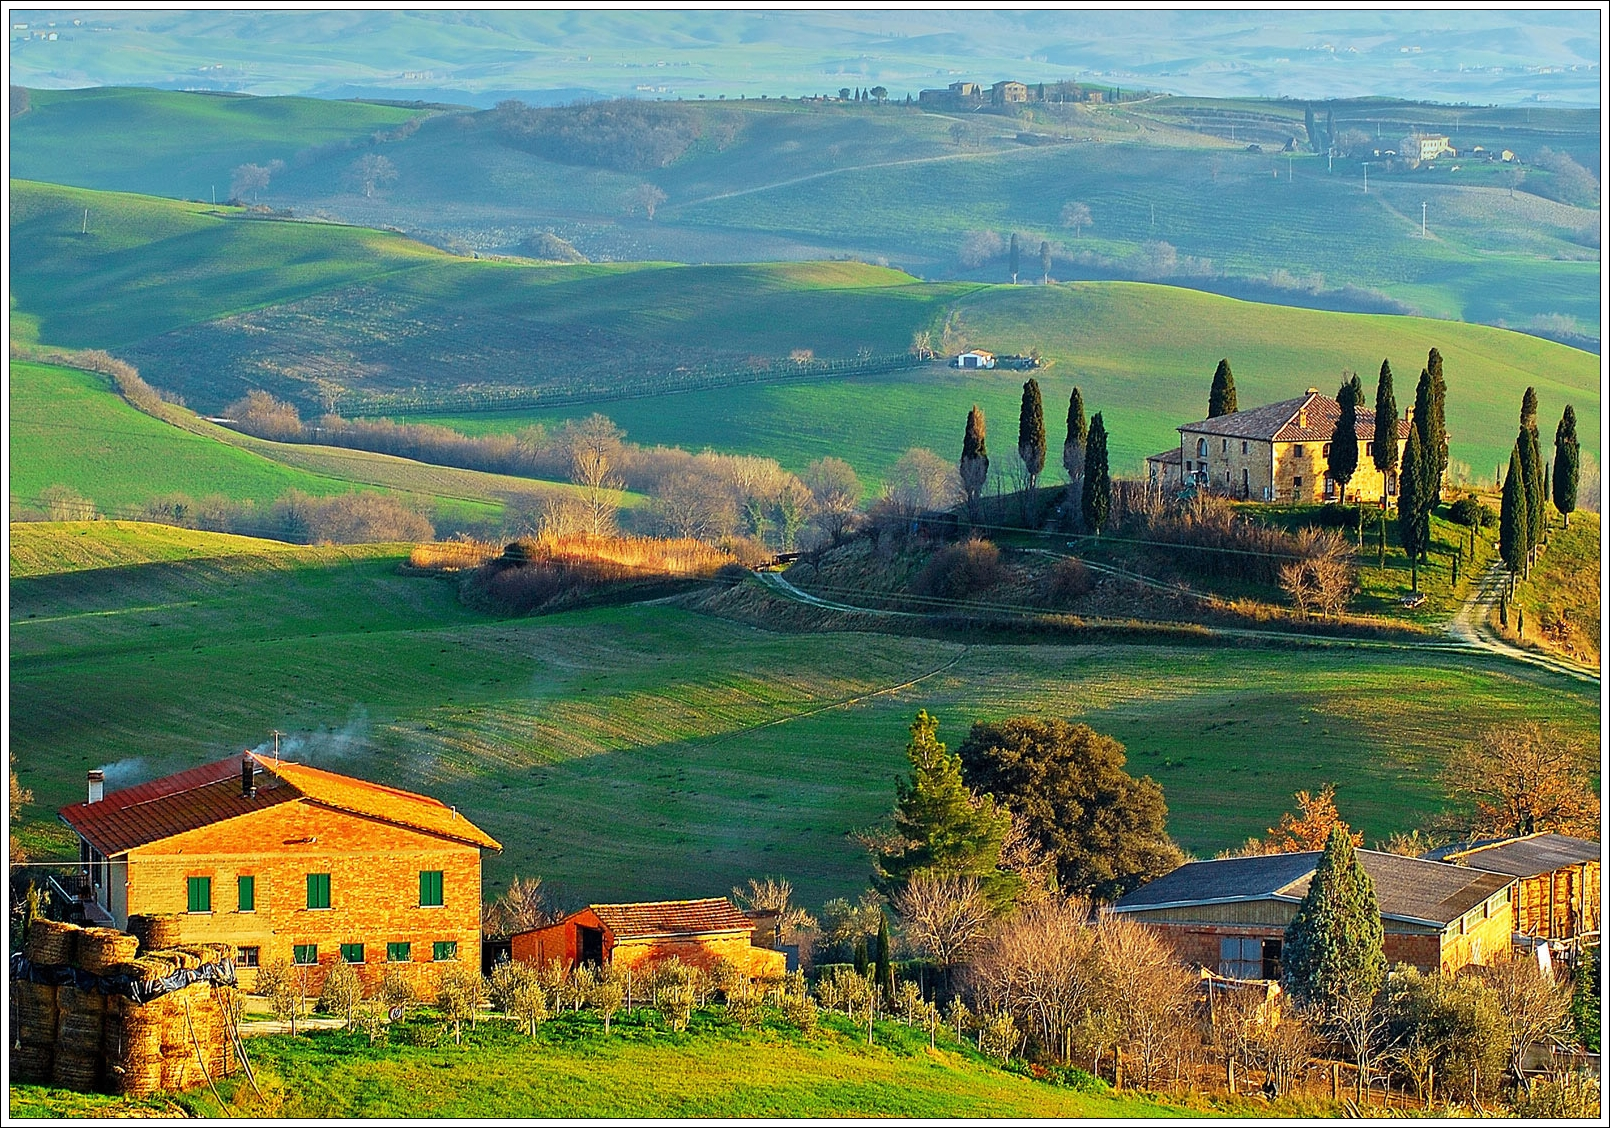 http://privateitalytoursltd.files.wordpress.com/2012/11/tuscany-hills-view.jpg